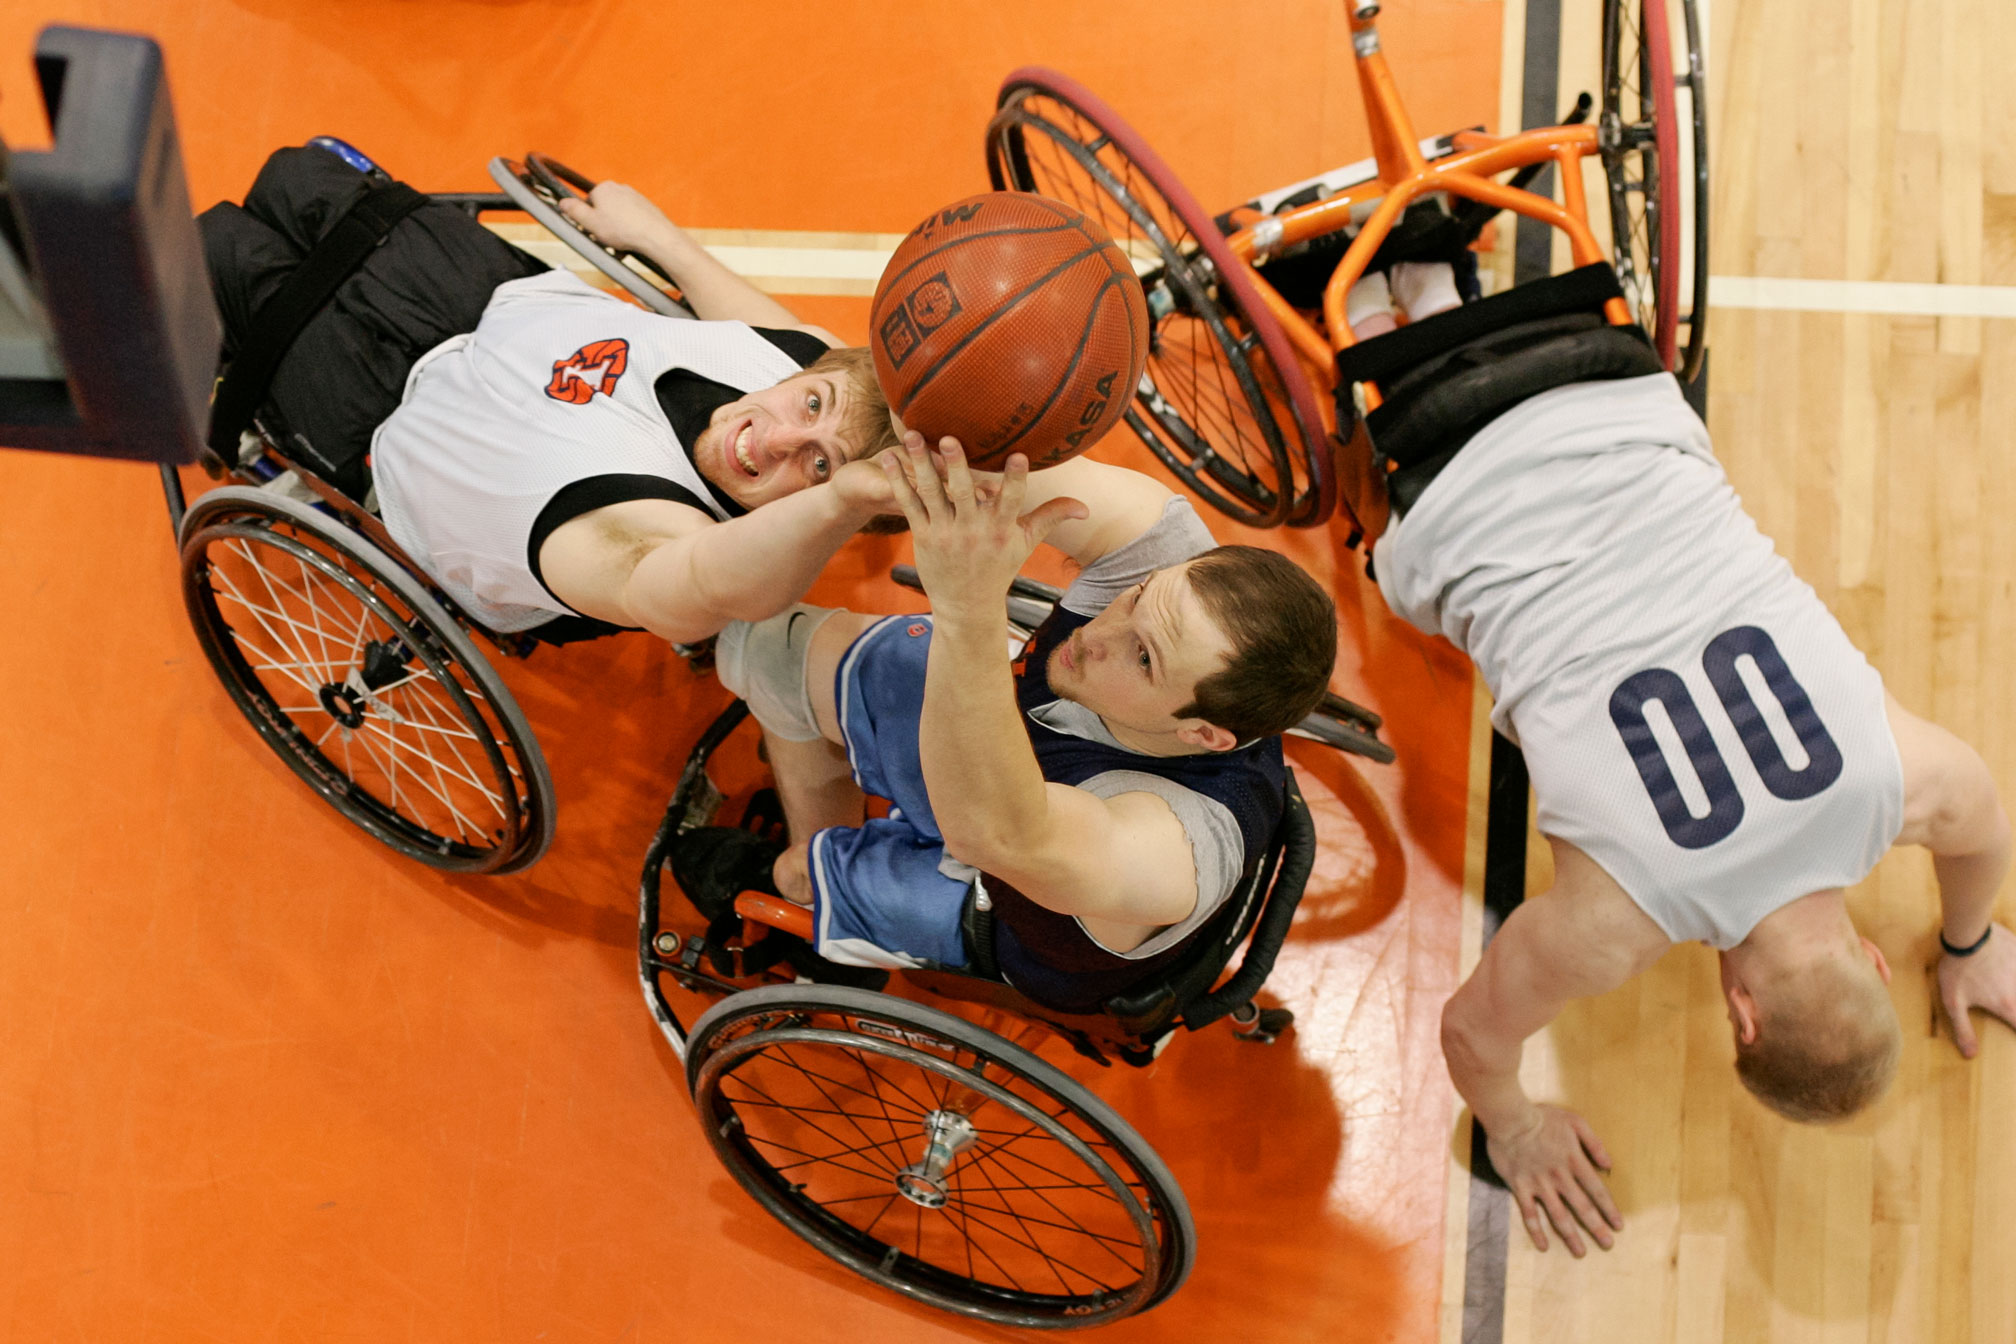 """Brandon Wagner, left, tries to intercept Drew Dokos' shot while Matt Buchi tries to lift himself up. """"The smallest guy on the court can keep the biggest, fastest guy out of the court just by having good chair position,"""" head coach Mike Frogley said. """"A pick and roll in wheelchair basketball is the most deadly way to score."""""""